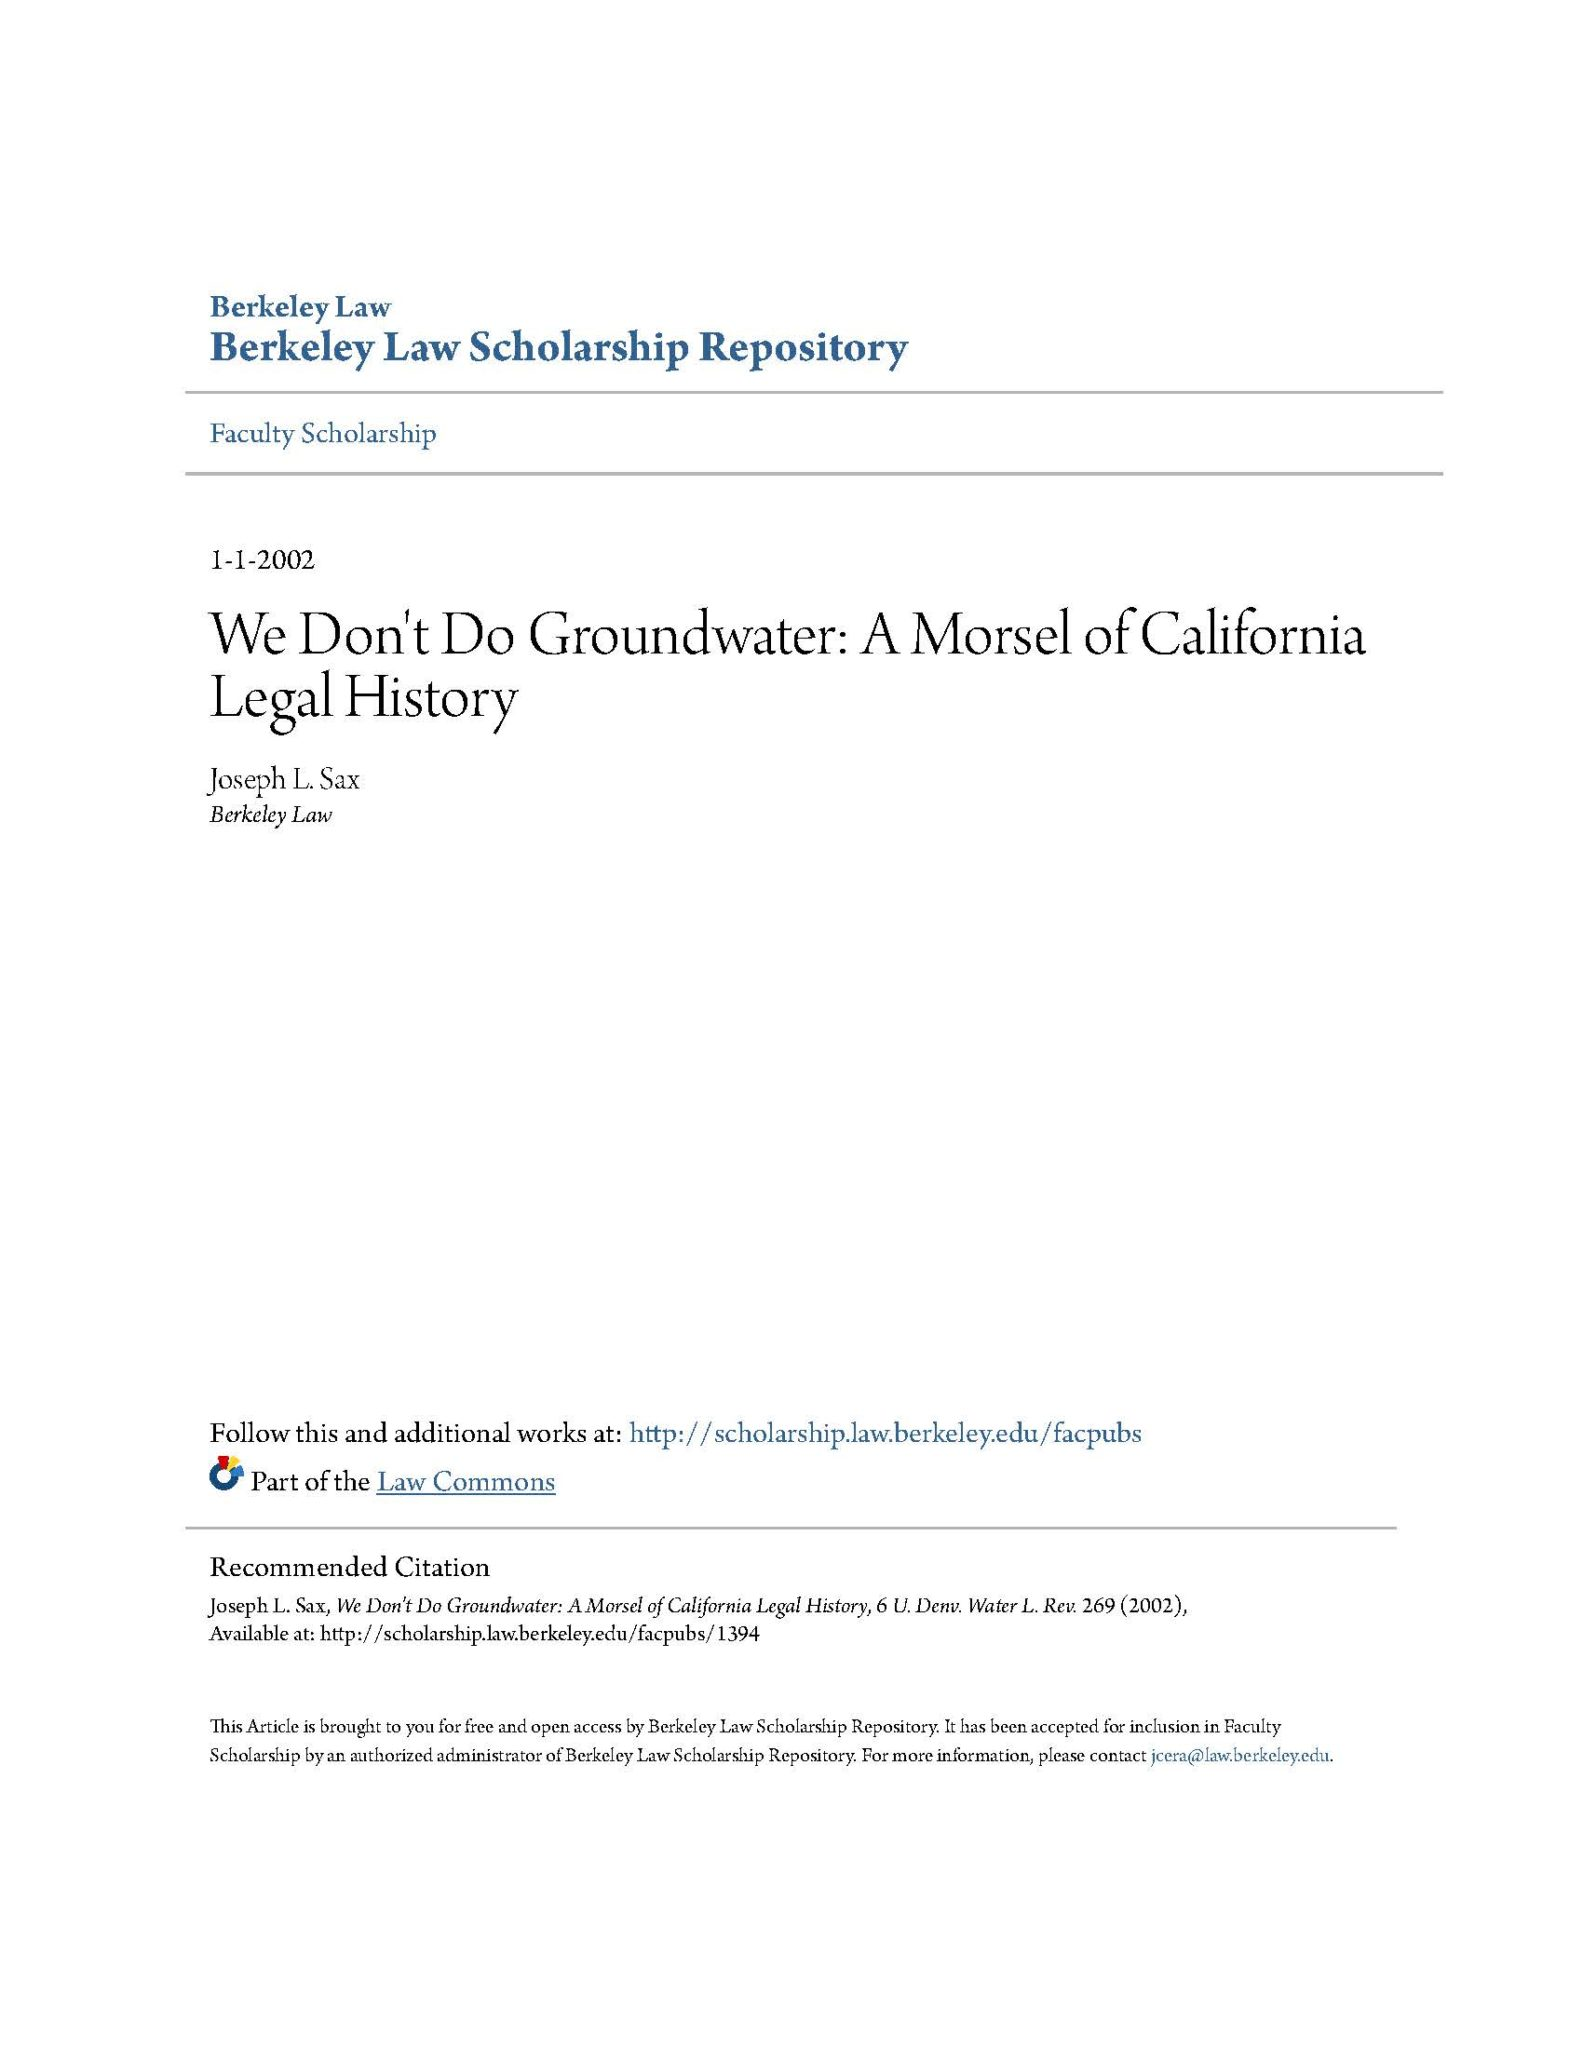 We Don t Do Groundwater  A Morsel of California Legal History ... 30fb3774d